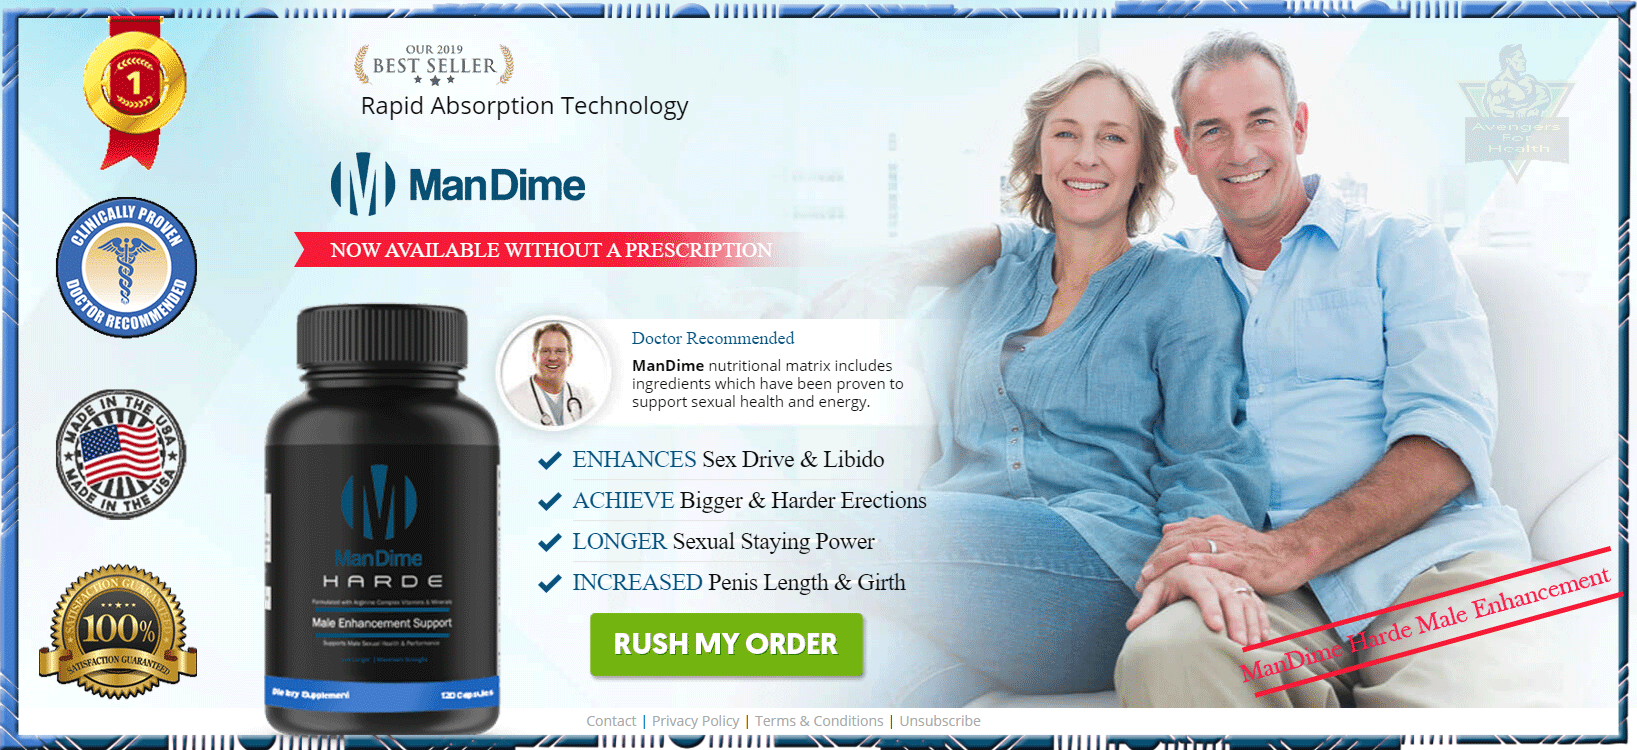 ManDime-Harde-Male-Enhancement-trial1